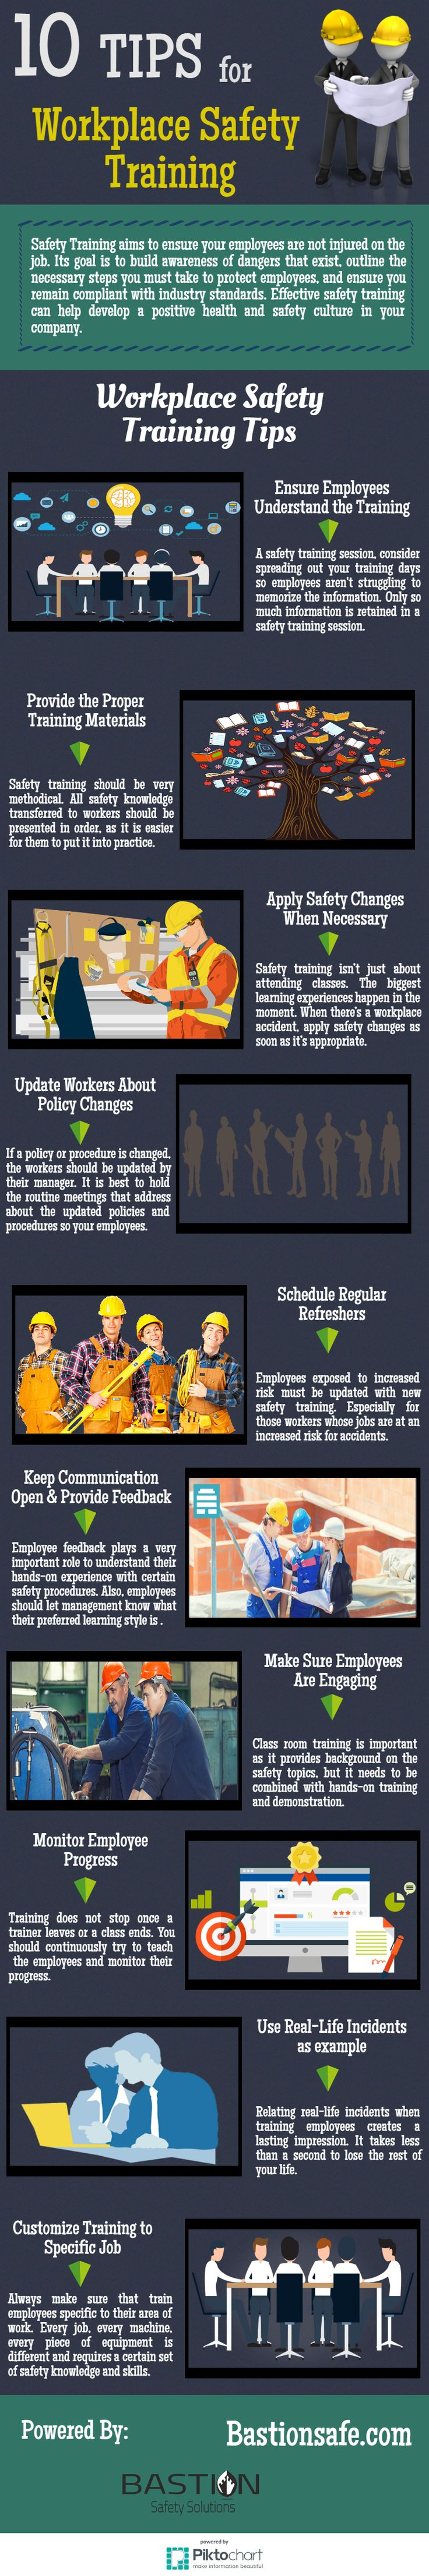 Top 10 Workplace Safety Training Tips #safety #onlinesafetytraining